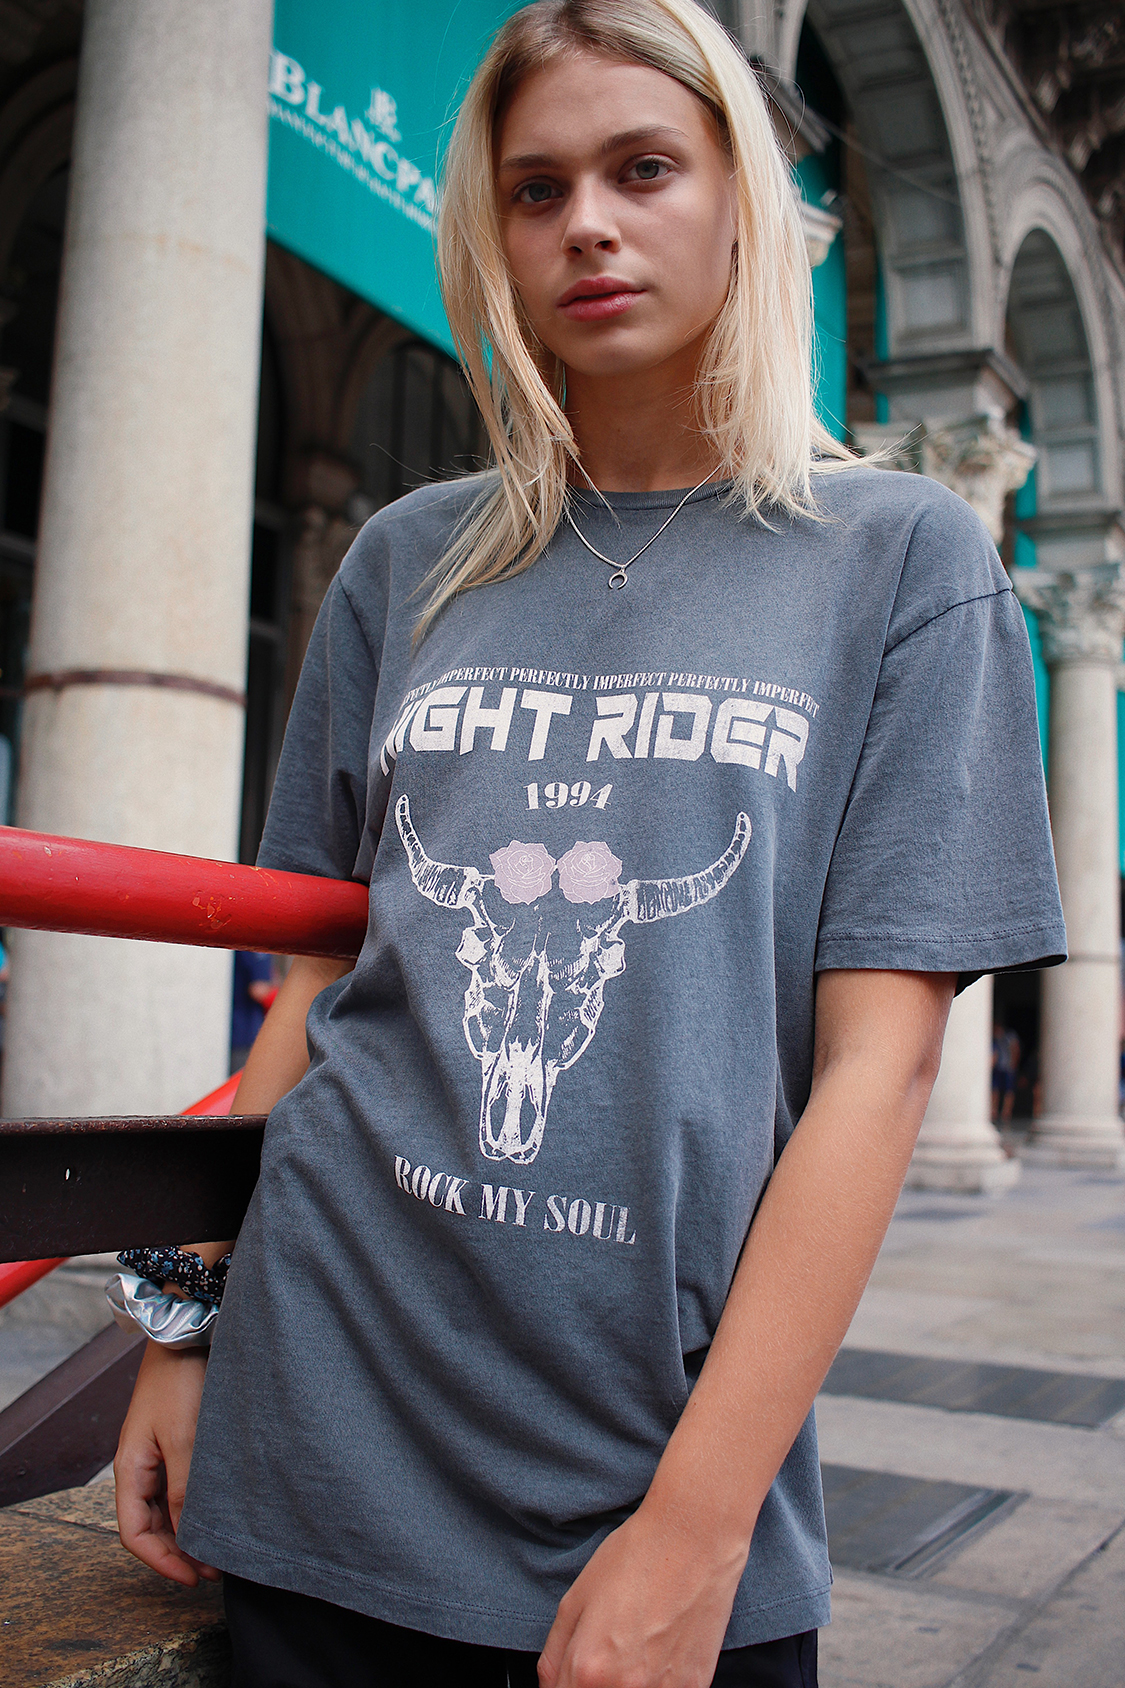 Camiseta night rider